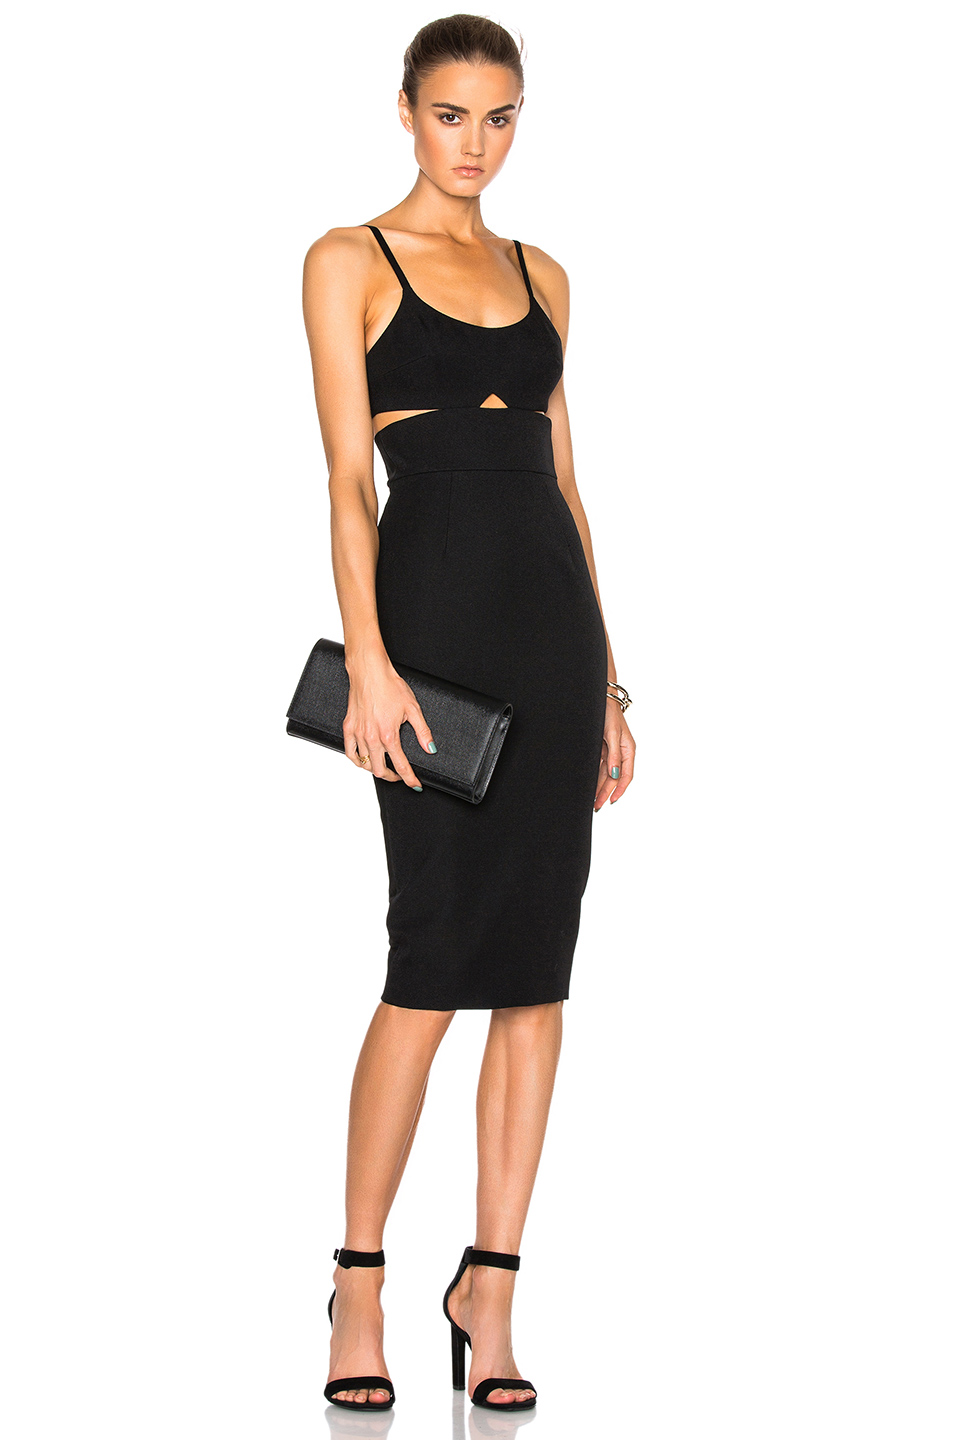 Victoria Beckham Wool Gabardine Rib Cut Out Fitted Dress in Black